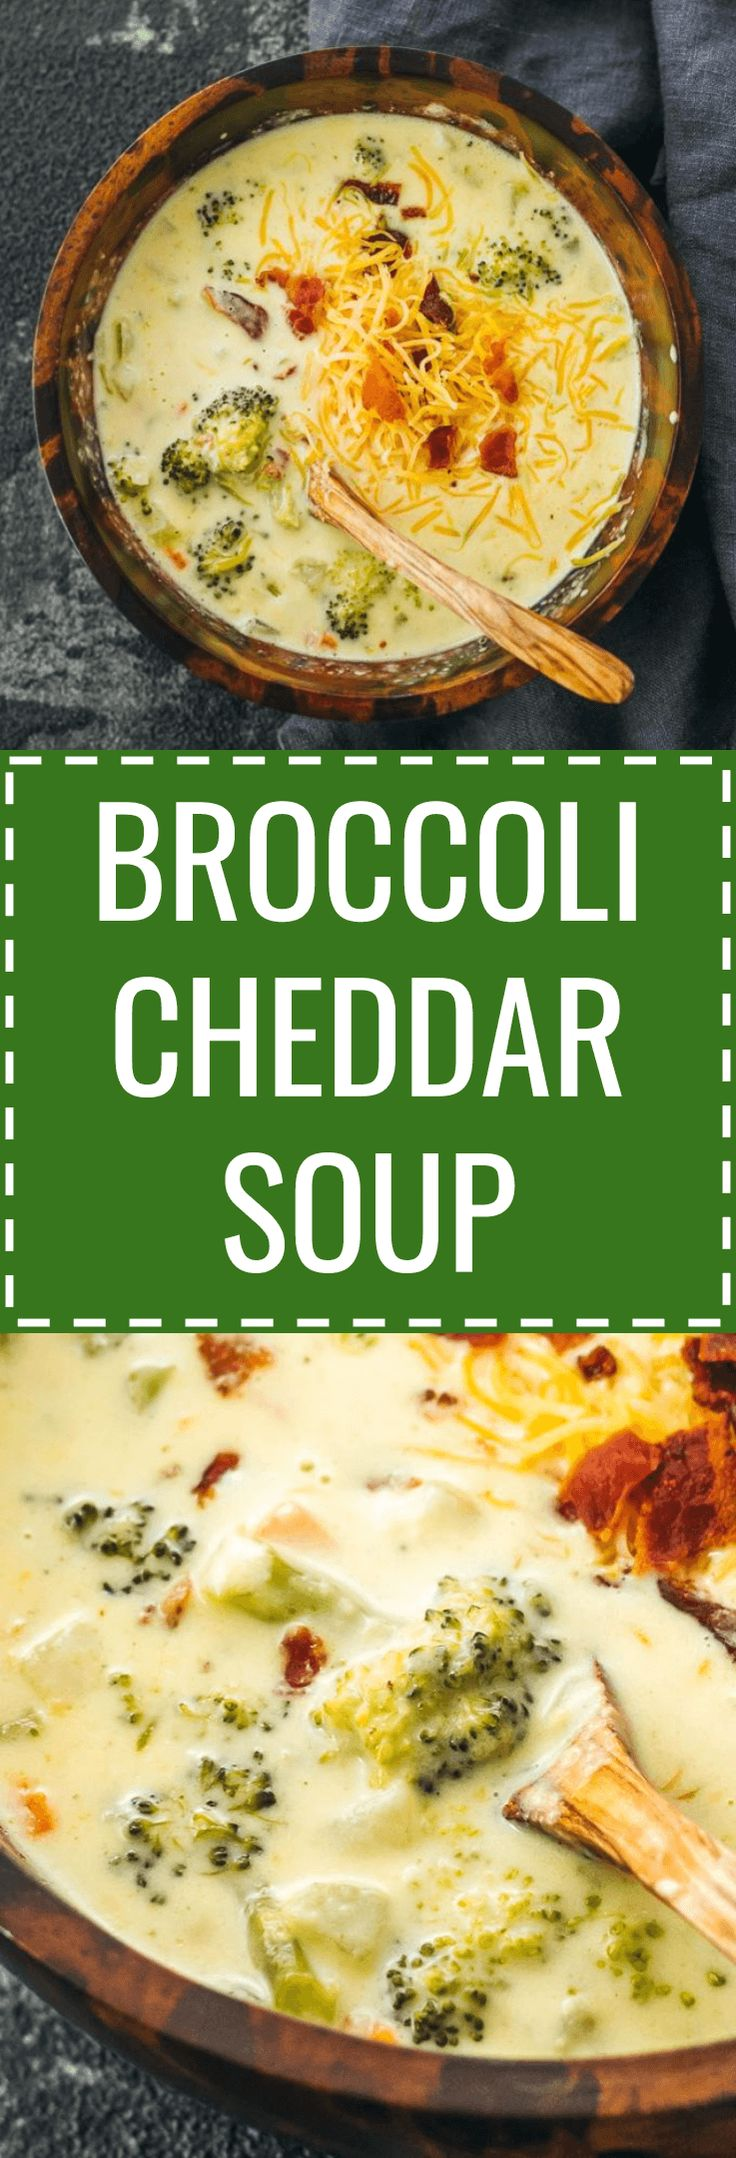 Broccoli cheddar soup - It's easy to make a broccoli cheddar cheese soup from scratch. Healthy and low carb. panera / keto / low carb / diet / atkins / induction / meals / recipes / easy / dinner / lunch / foods / healthy / gluten free / paleo / recipe /  http://eatdojo.com/healthy-soup-recipes-for-weight-loss-easy-yummy/